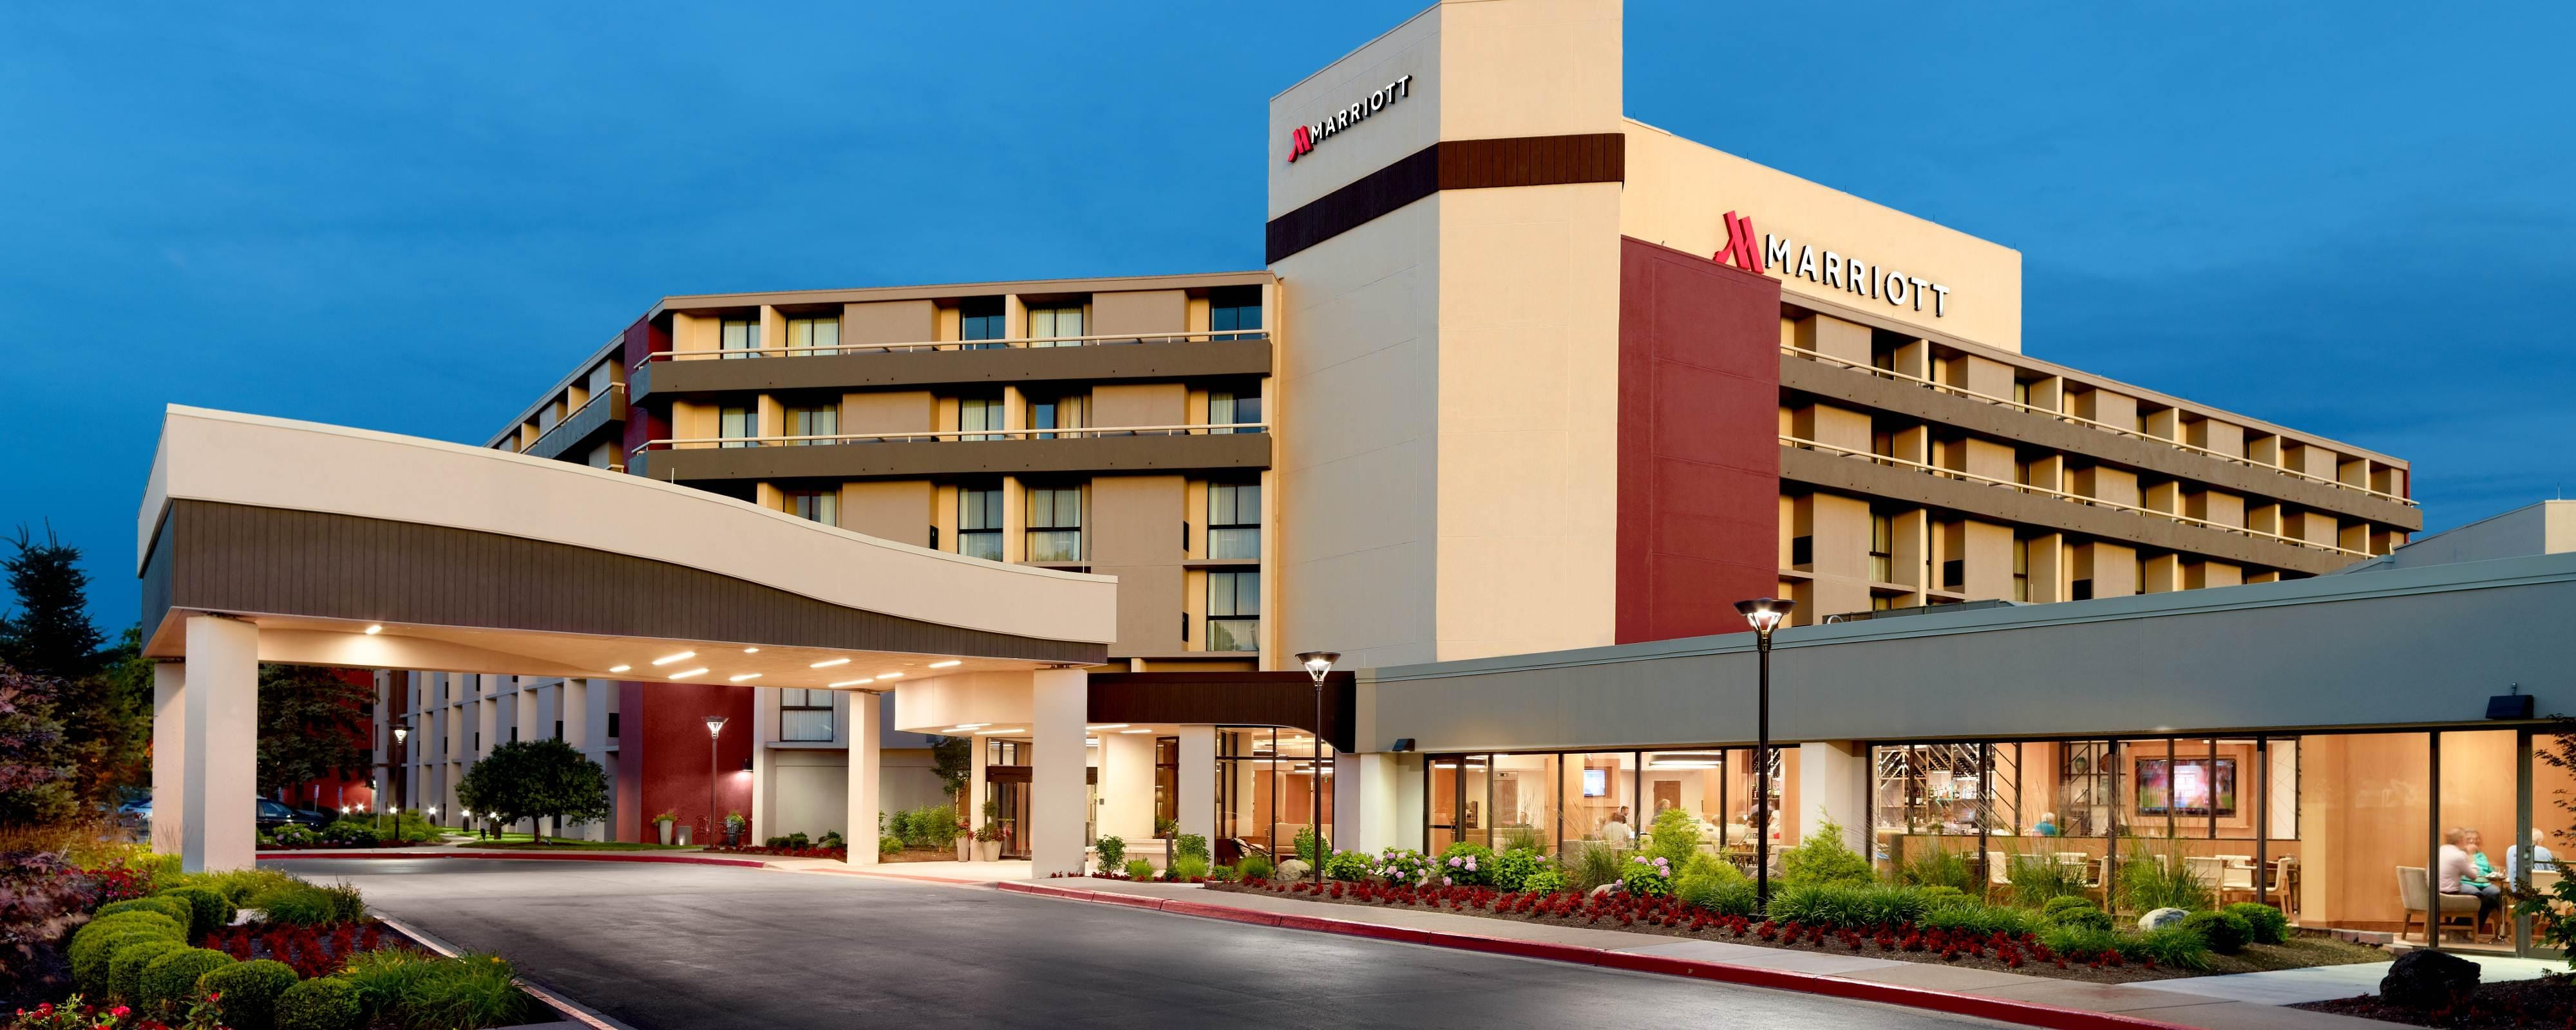 Dayton Hotel Marriott In Ohio Located Near Ud And Wright Patt Afb